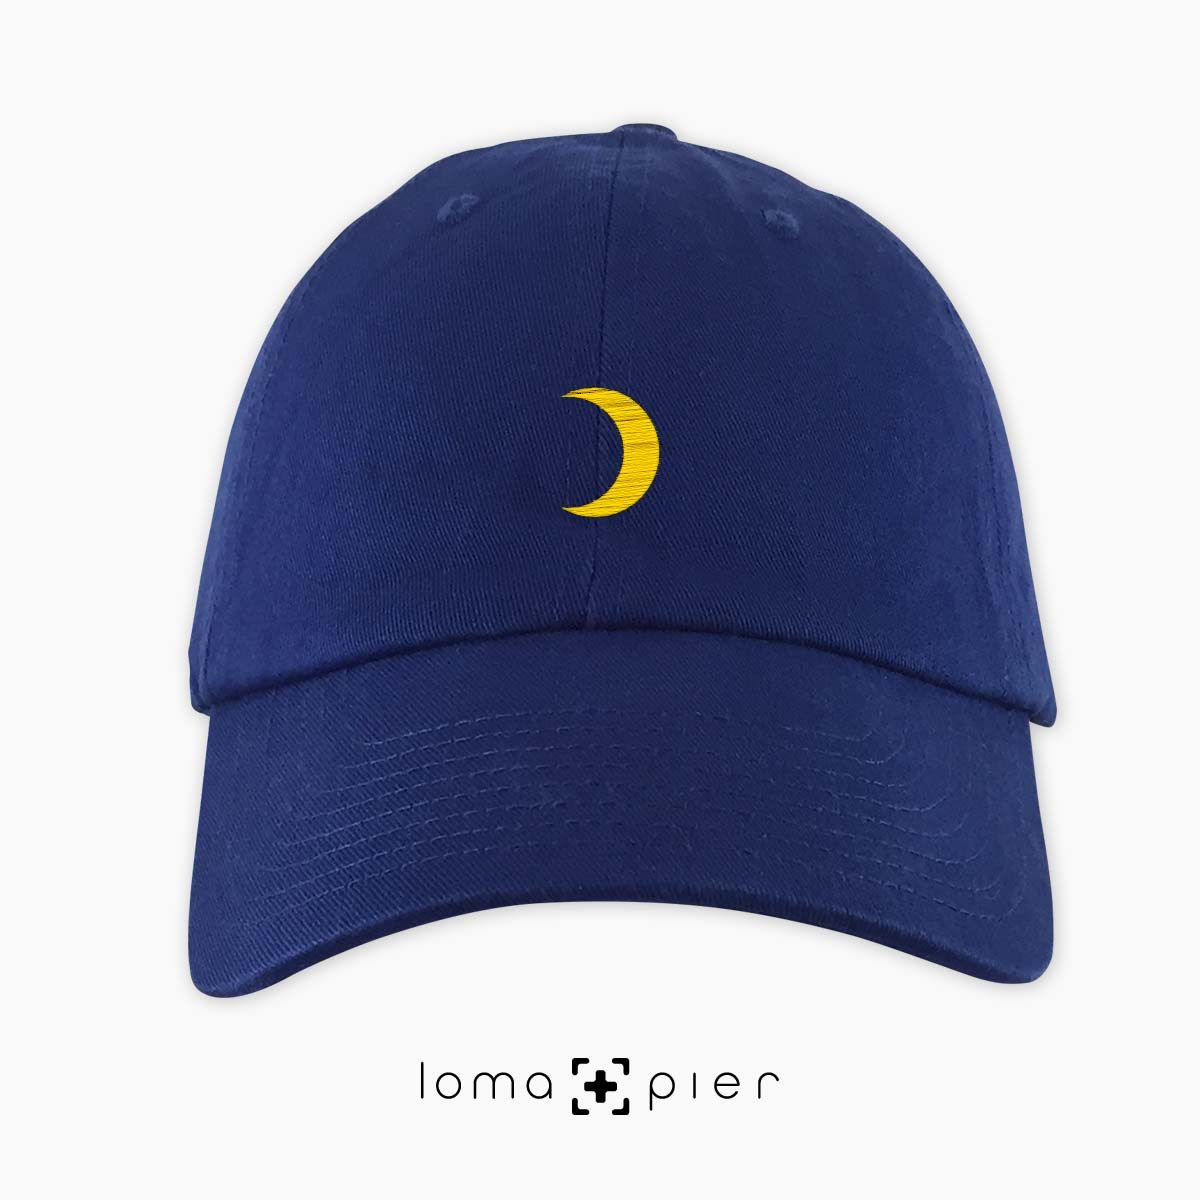 MOON icon embroidered on a royal blue dad hat by loma+pier hat store made in the USA